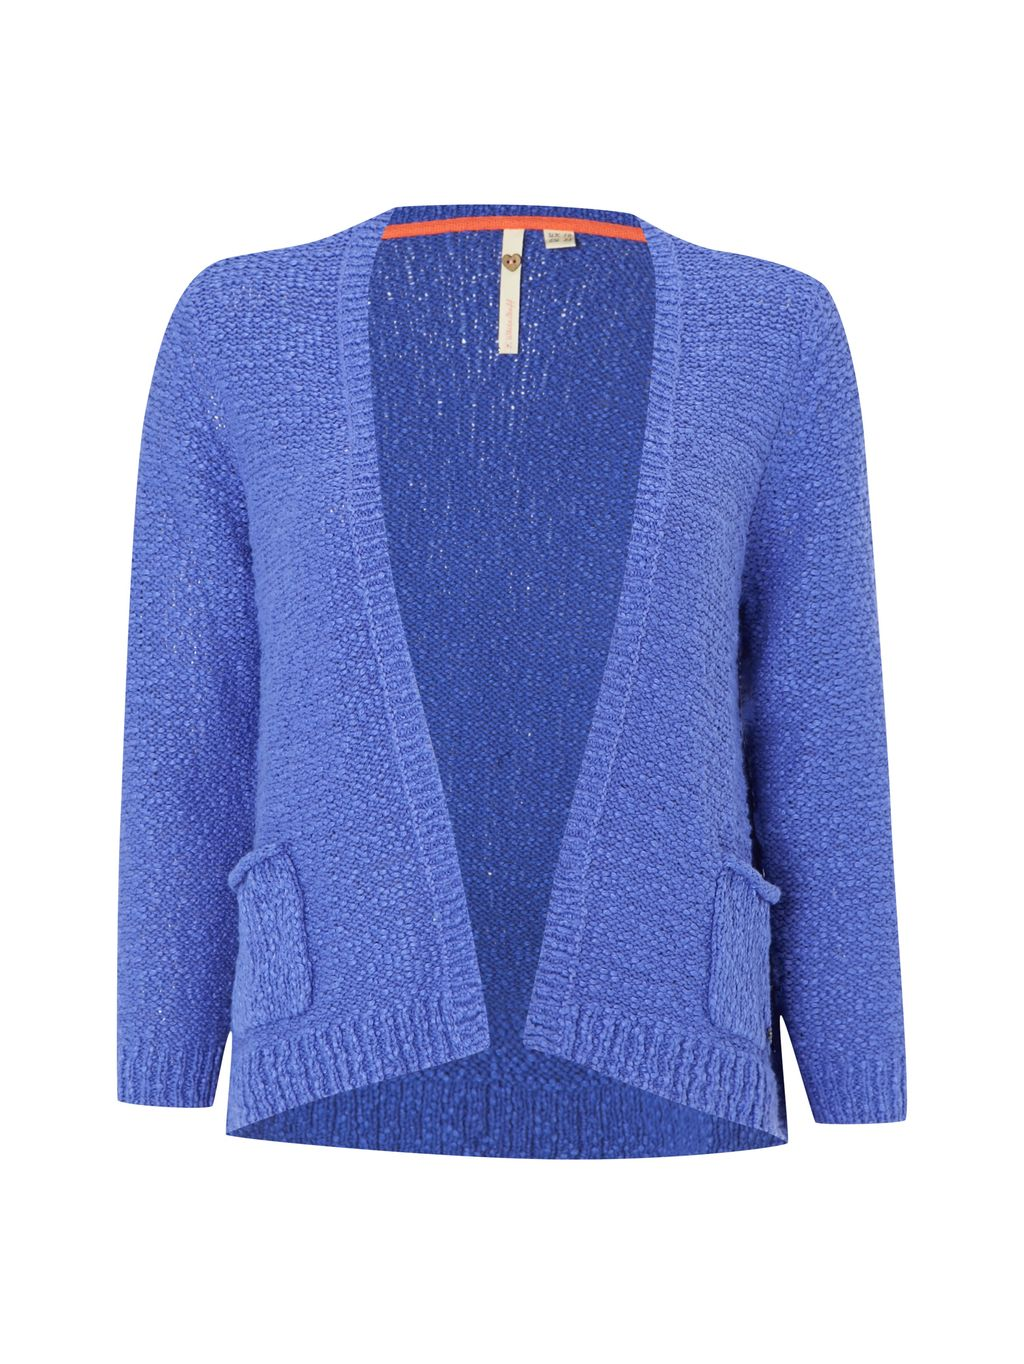 Magic Cardi, Blue - pattern: plain; neckline: collarless open; style: open front; predominant colour: denim; occasions: casual, creative work; length: standard; fibres: cotton - 100%; fit: loose; sleeve length: 3/4 length; sleeve style: standard; texture group: knits/crochet; pattern type: knitted - fine stitch; season: s/s 2016